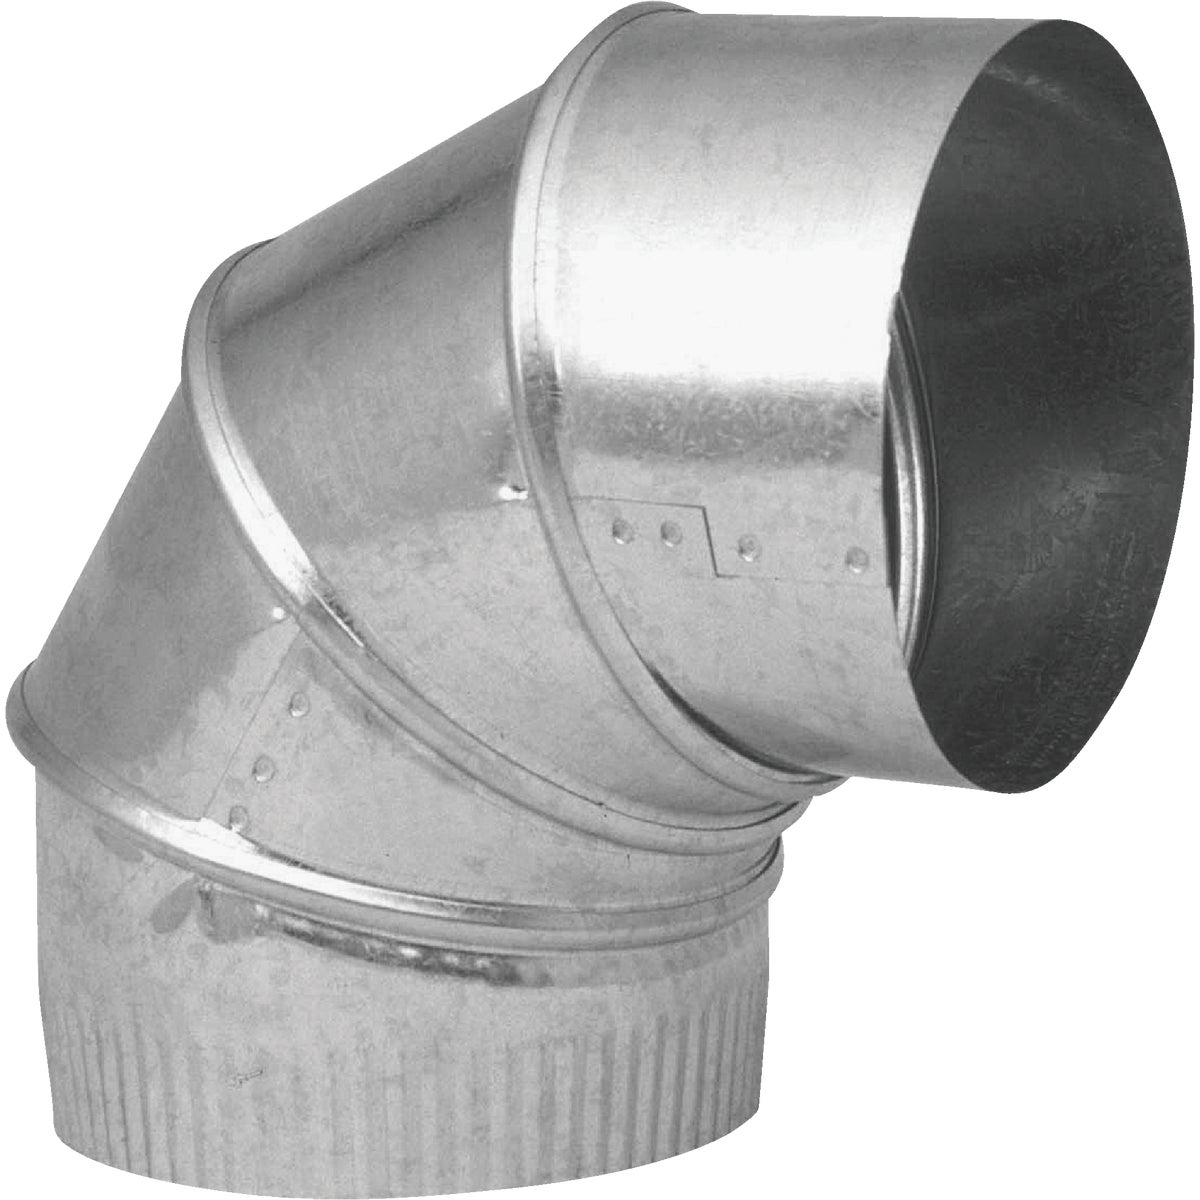 "4"" 30GA GALV ADJ ELBOW - GV0286-C by Imperial Mfg Group"